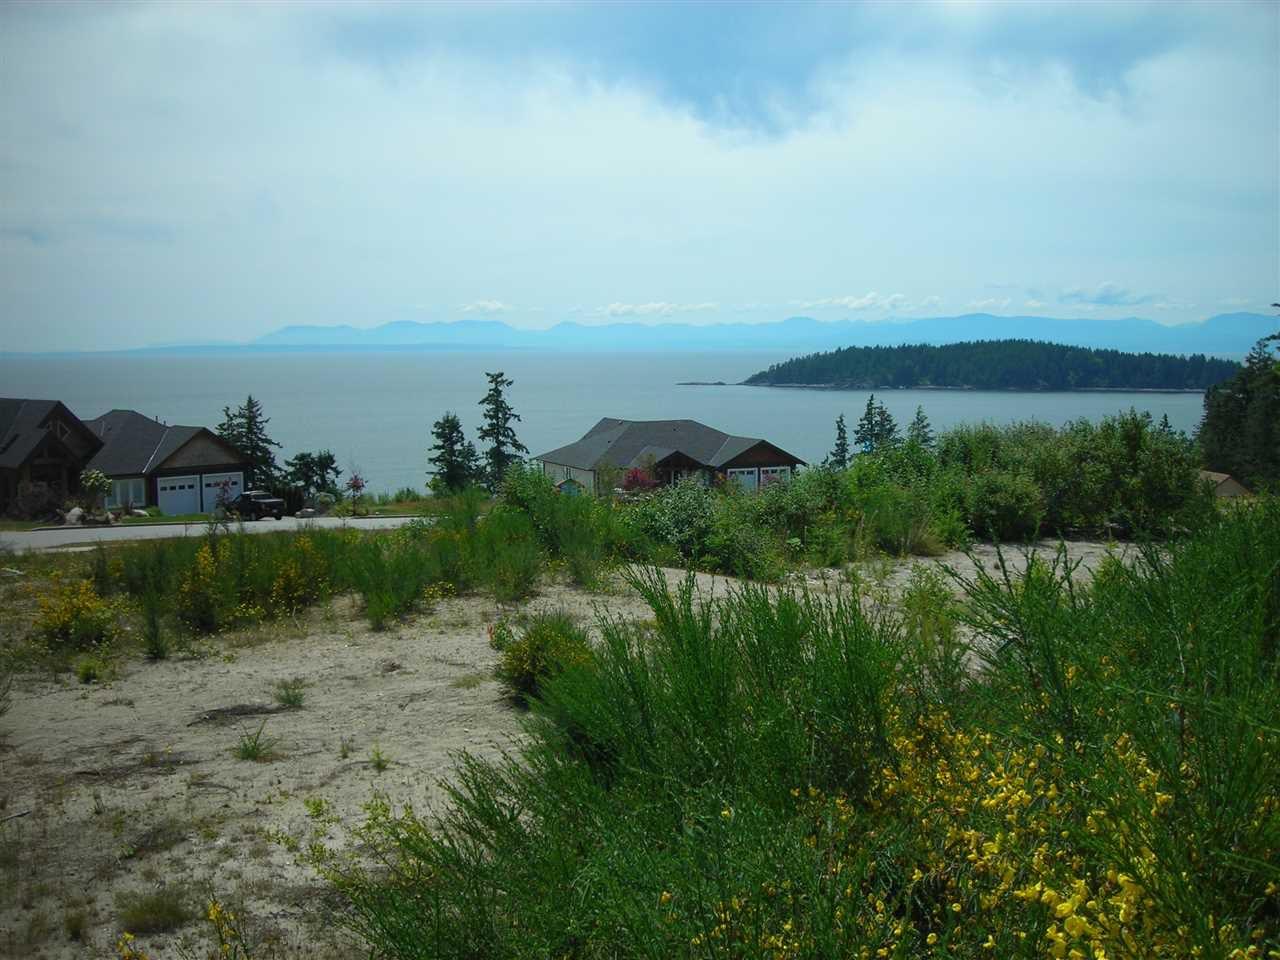 Main Photo: LOT 52 COMPASS LANE in Sechelt: Sechelt District Home for sale (Sunshine Coast)  : MLS®# R2042193